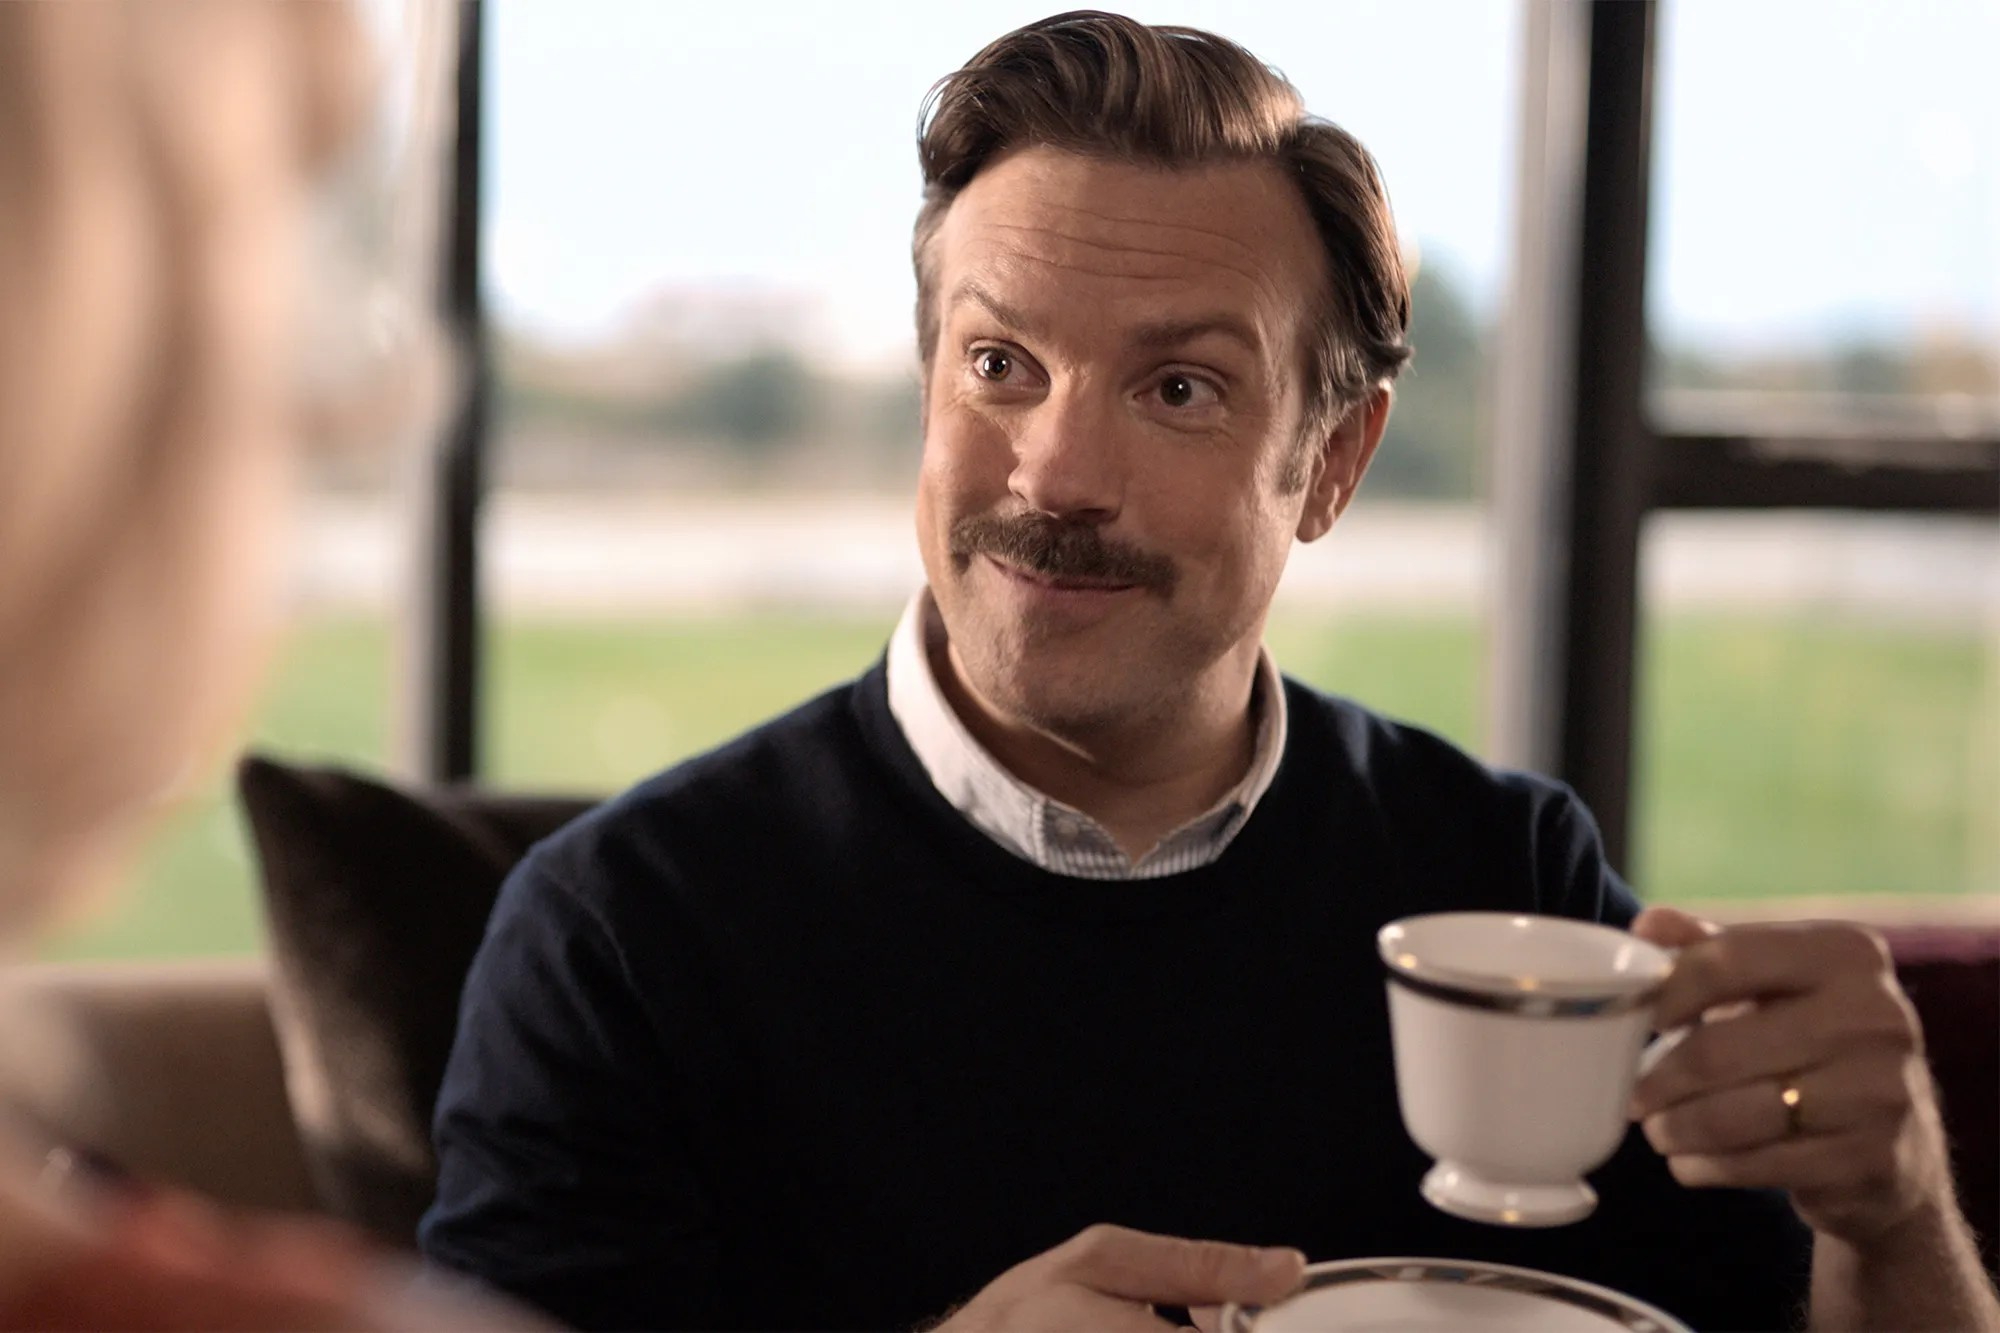 Why Isn't Ted Lasso Considered a Complete Creep? | Vanity Fair